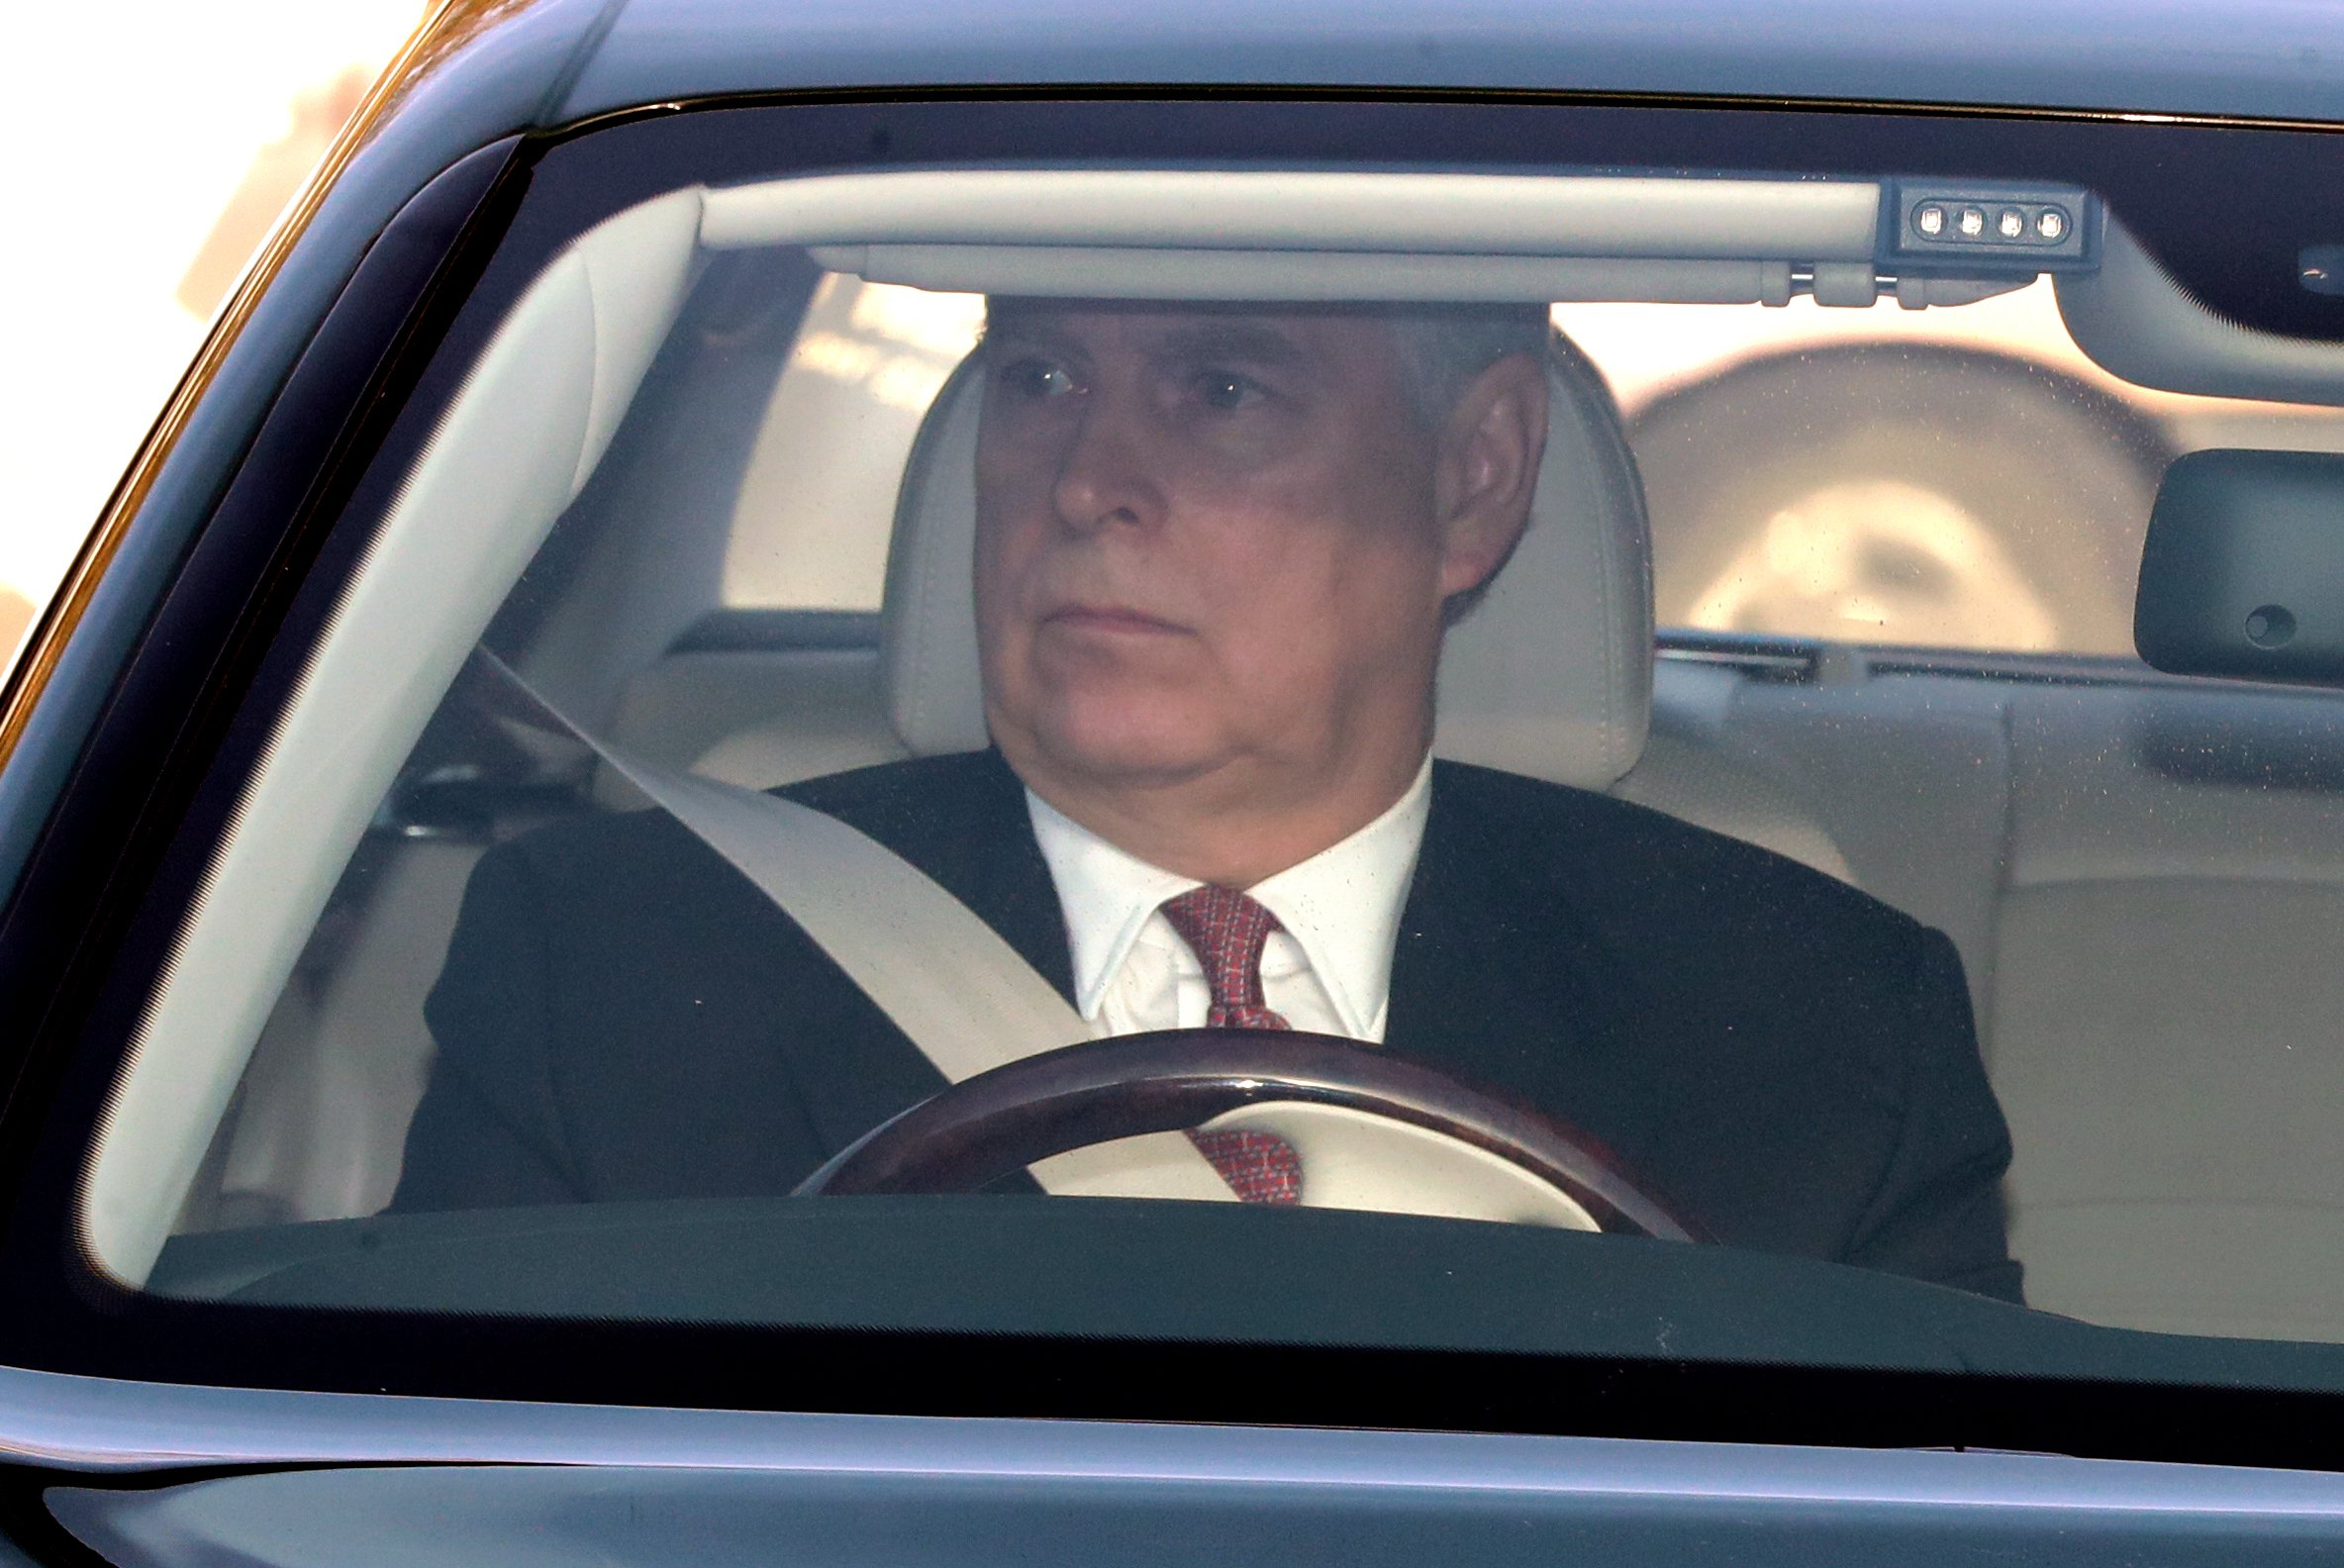 Woman says she saw Prince Andrew at Mayfair nightclub with alleged Jeffrey Epstein victim Virginia Giuffre